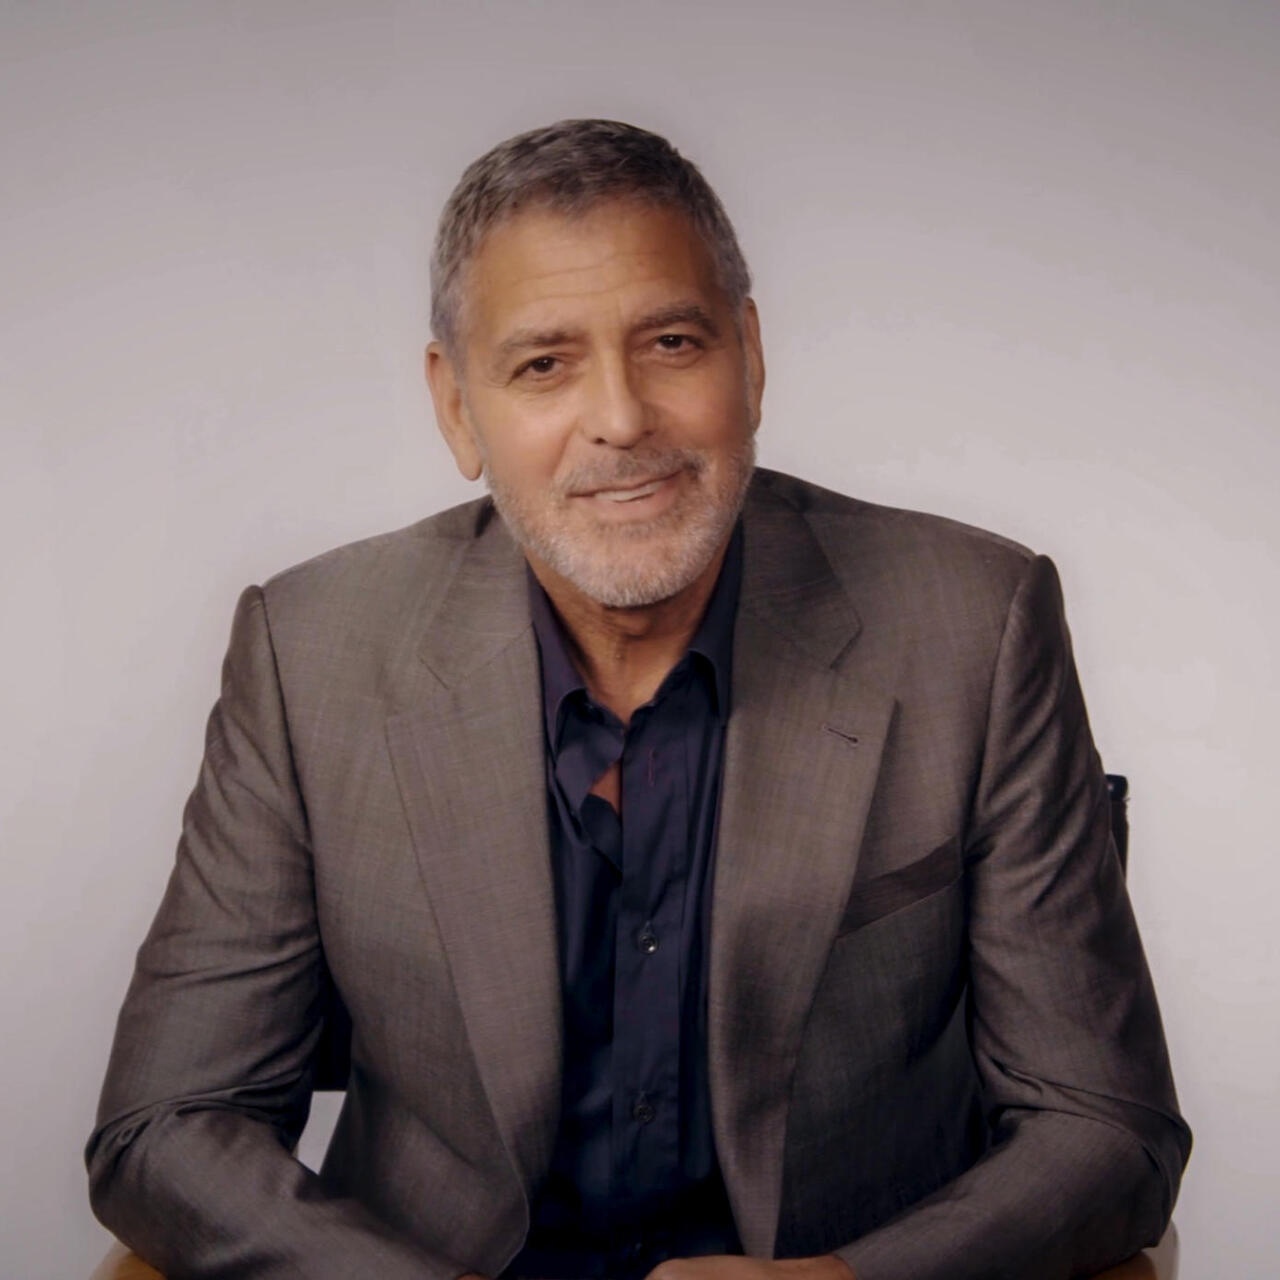 The Secret To George Clooney S Hair The Flowbee France 24